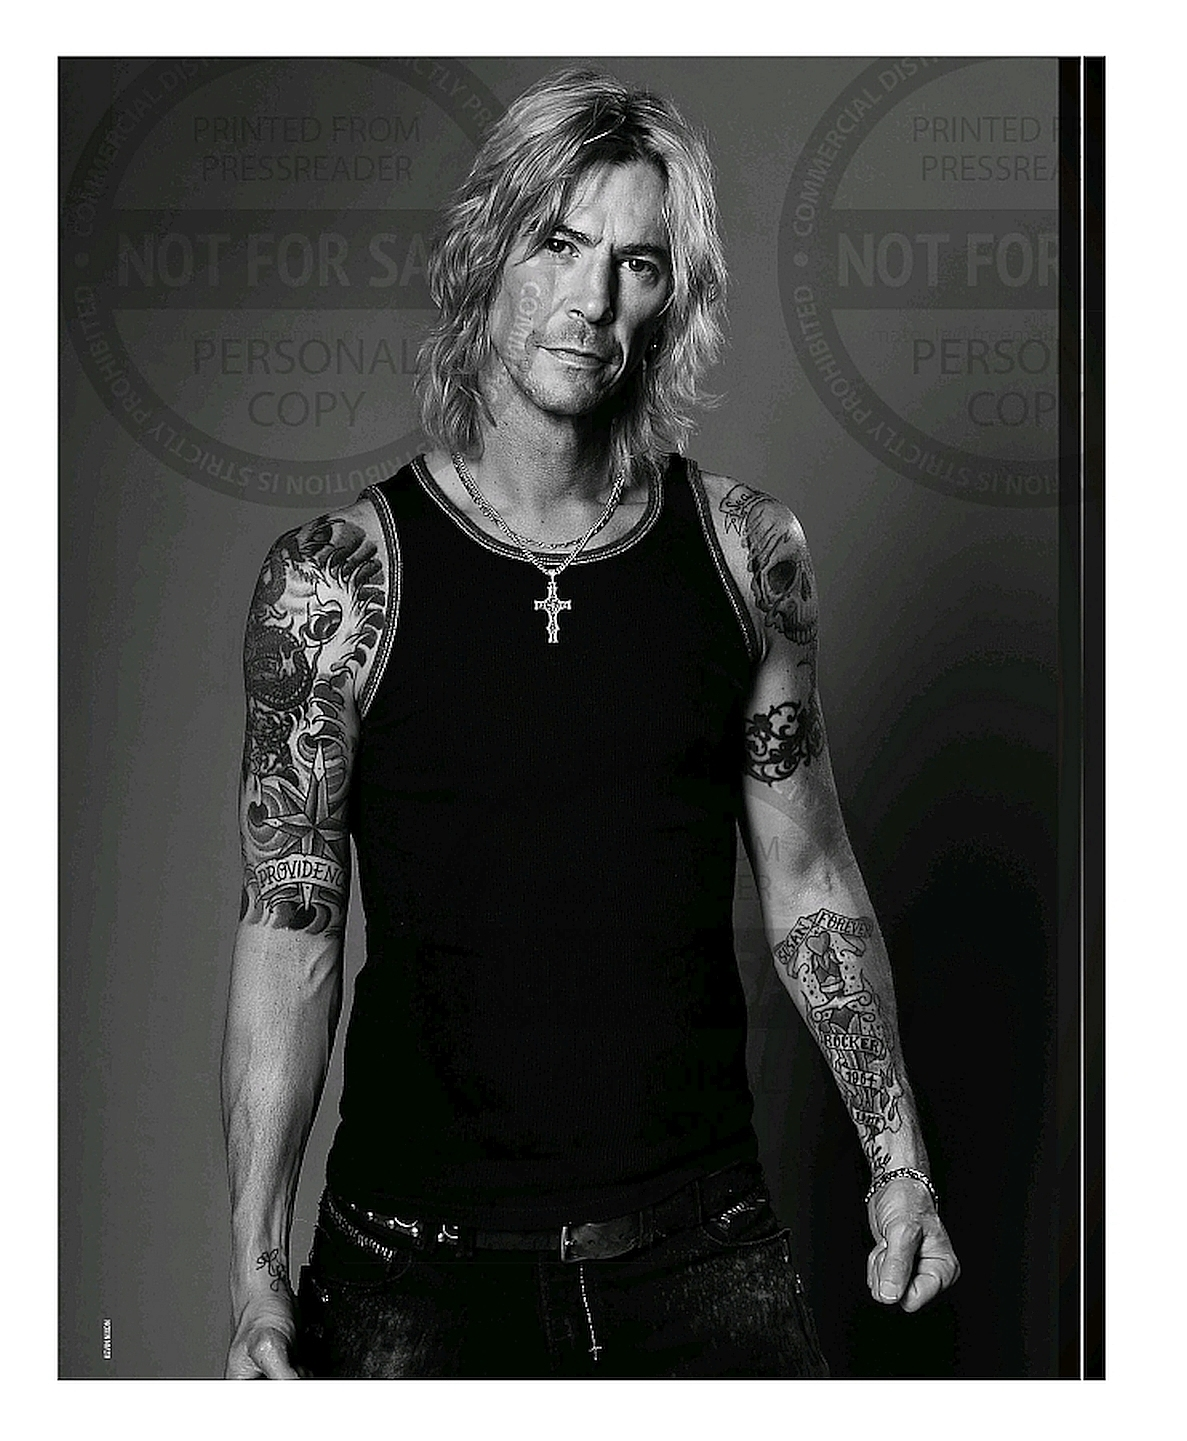 2019.05.DD - Classic Rock - Duff McKagan: We wanted Izzy to be part of Guns N' Roses reunion 2019_039